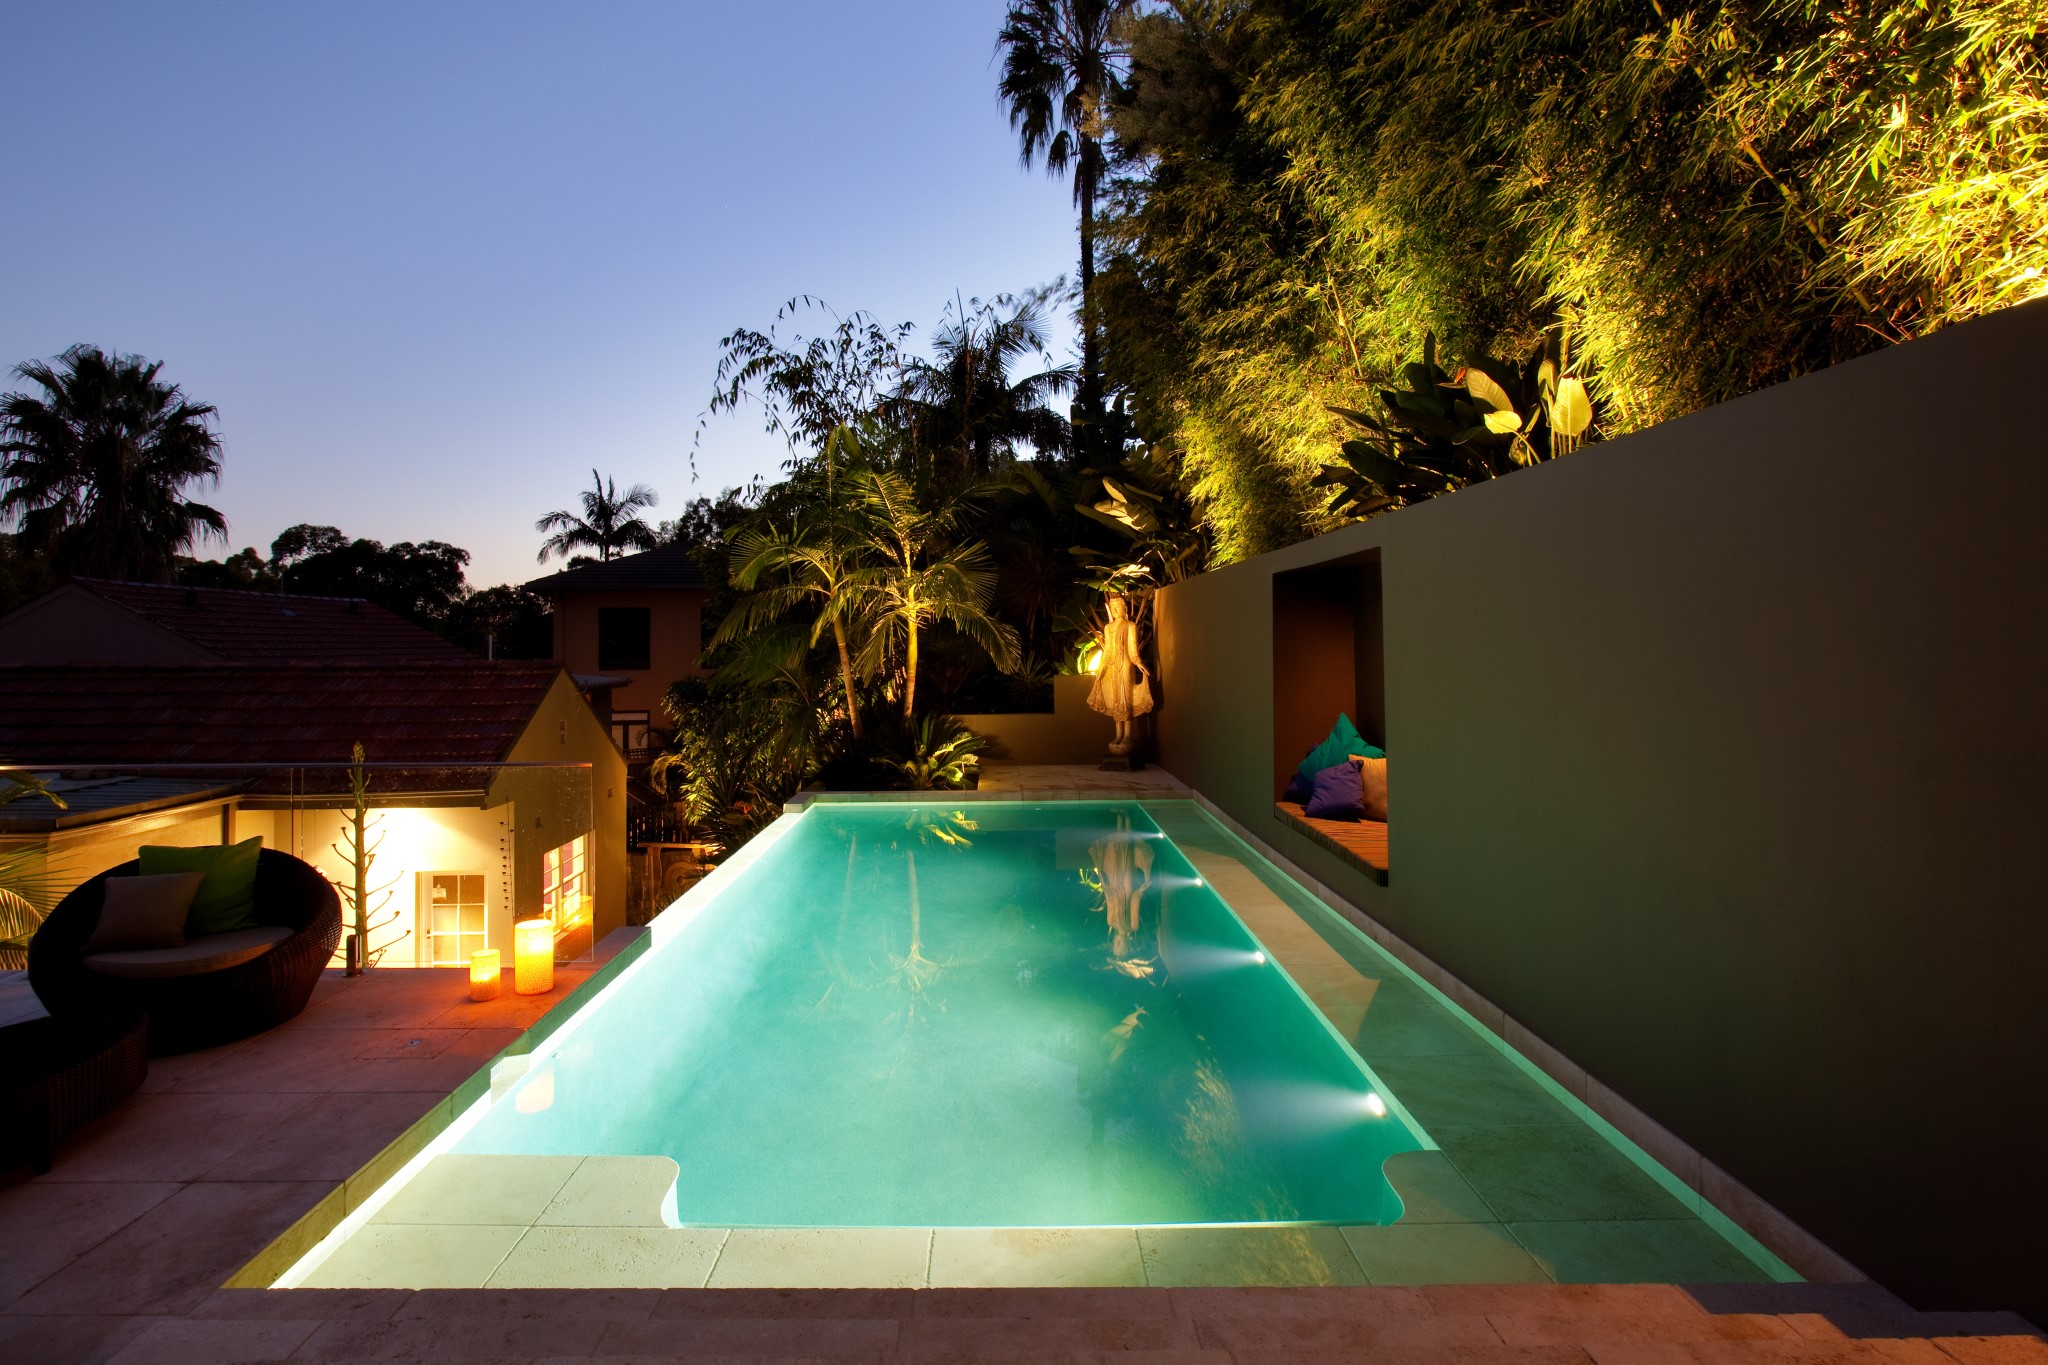 View of an Illuminated swimming pool at night